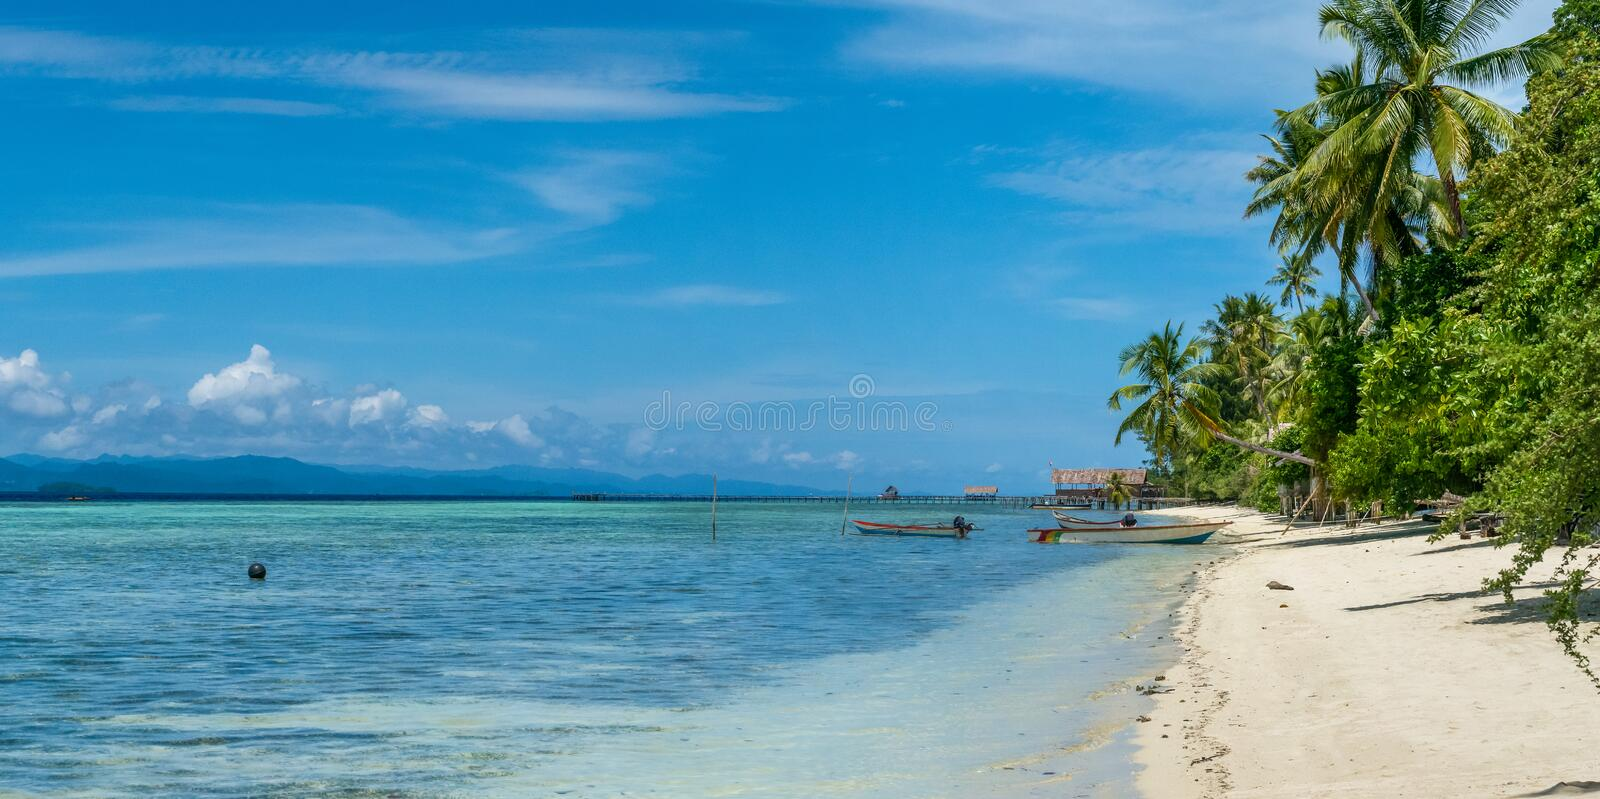 Coconat Palm on Kri Island, Homestay and Pier in Background. Raja Ampat, Indonesia, West Papua. Wide stock images